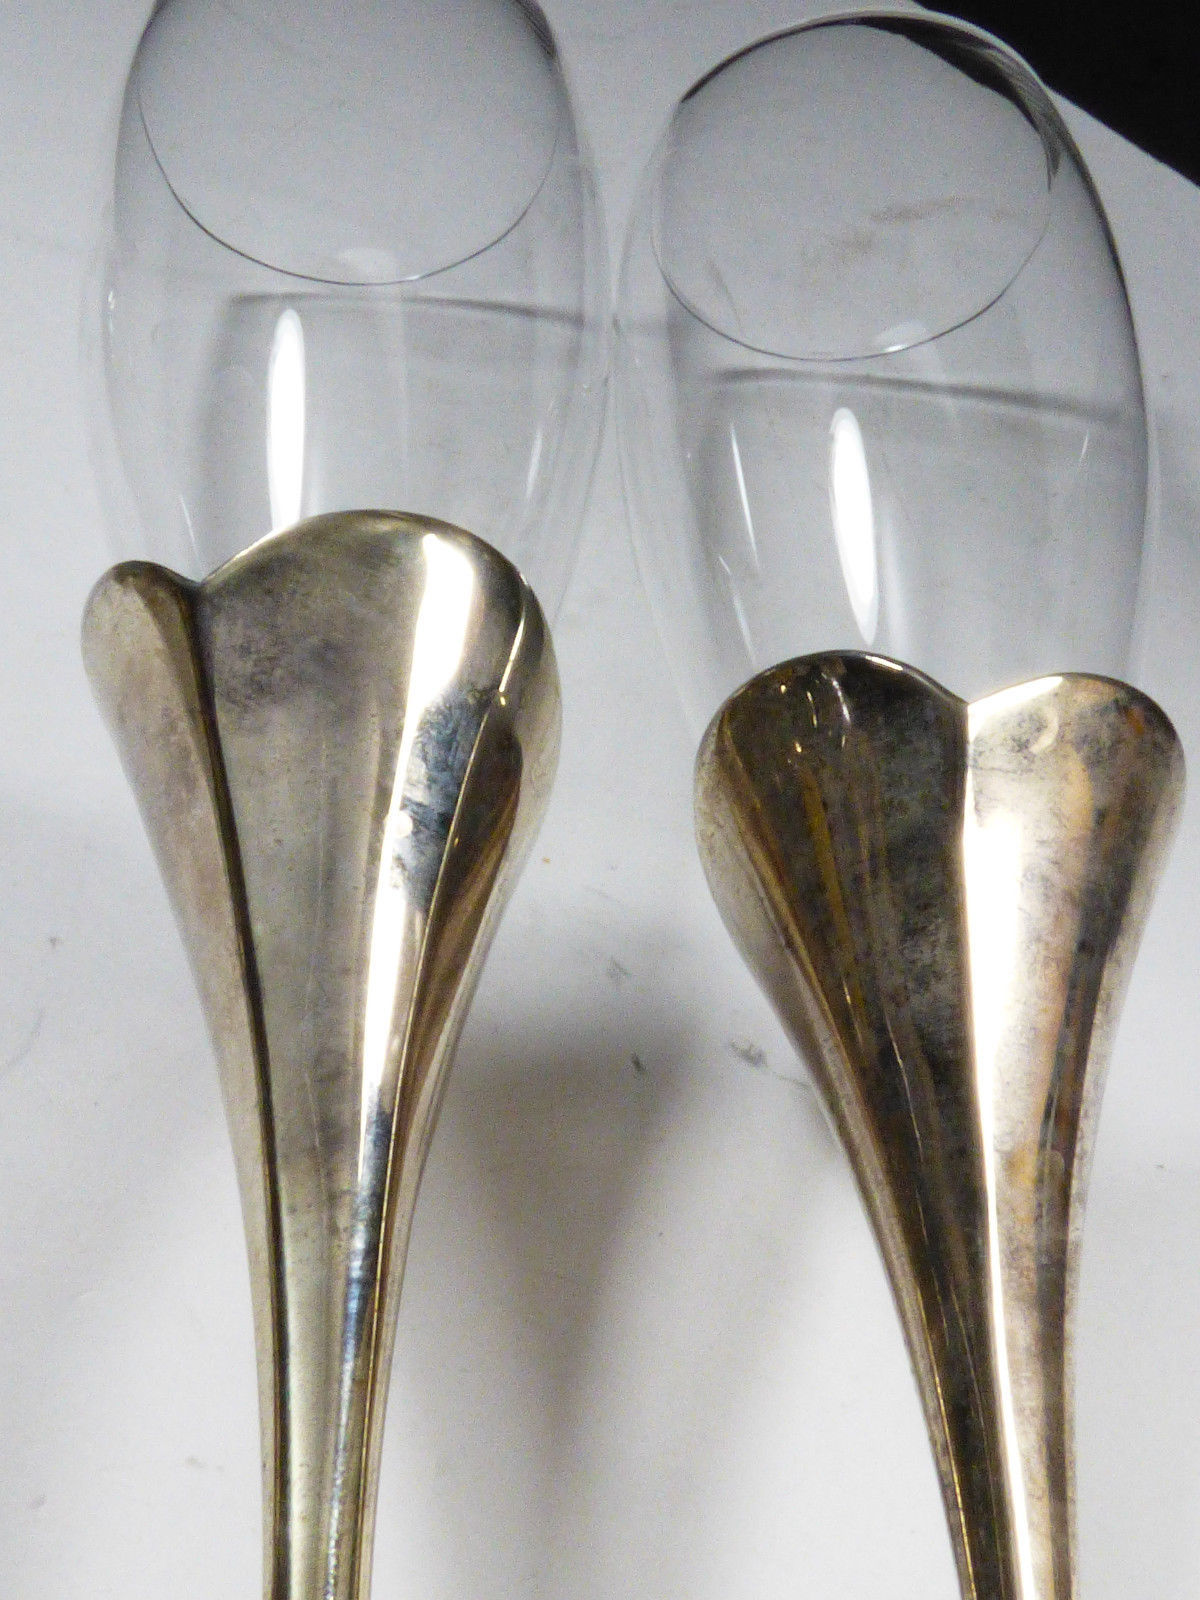 2 LENOX Crystal Champagne Flute Wedding Anniversary Silverplate Stems Heart image 6